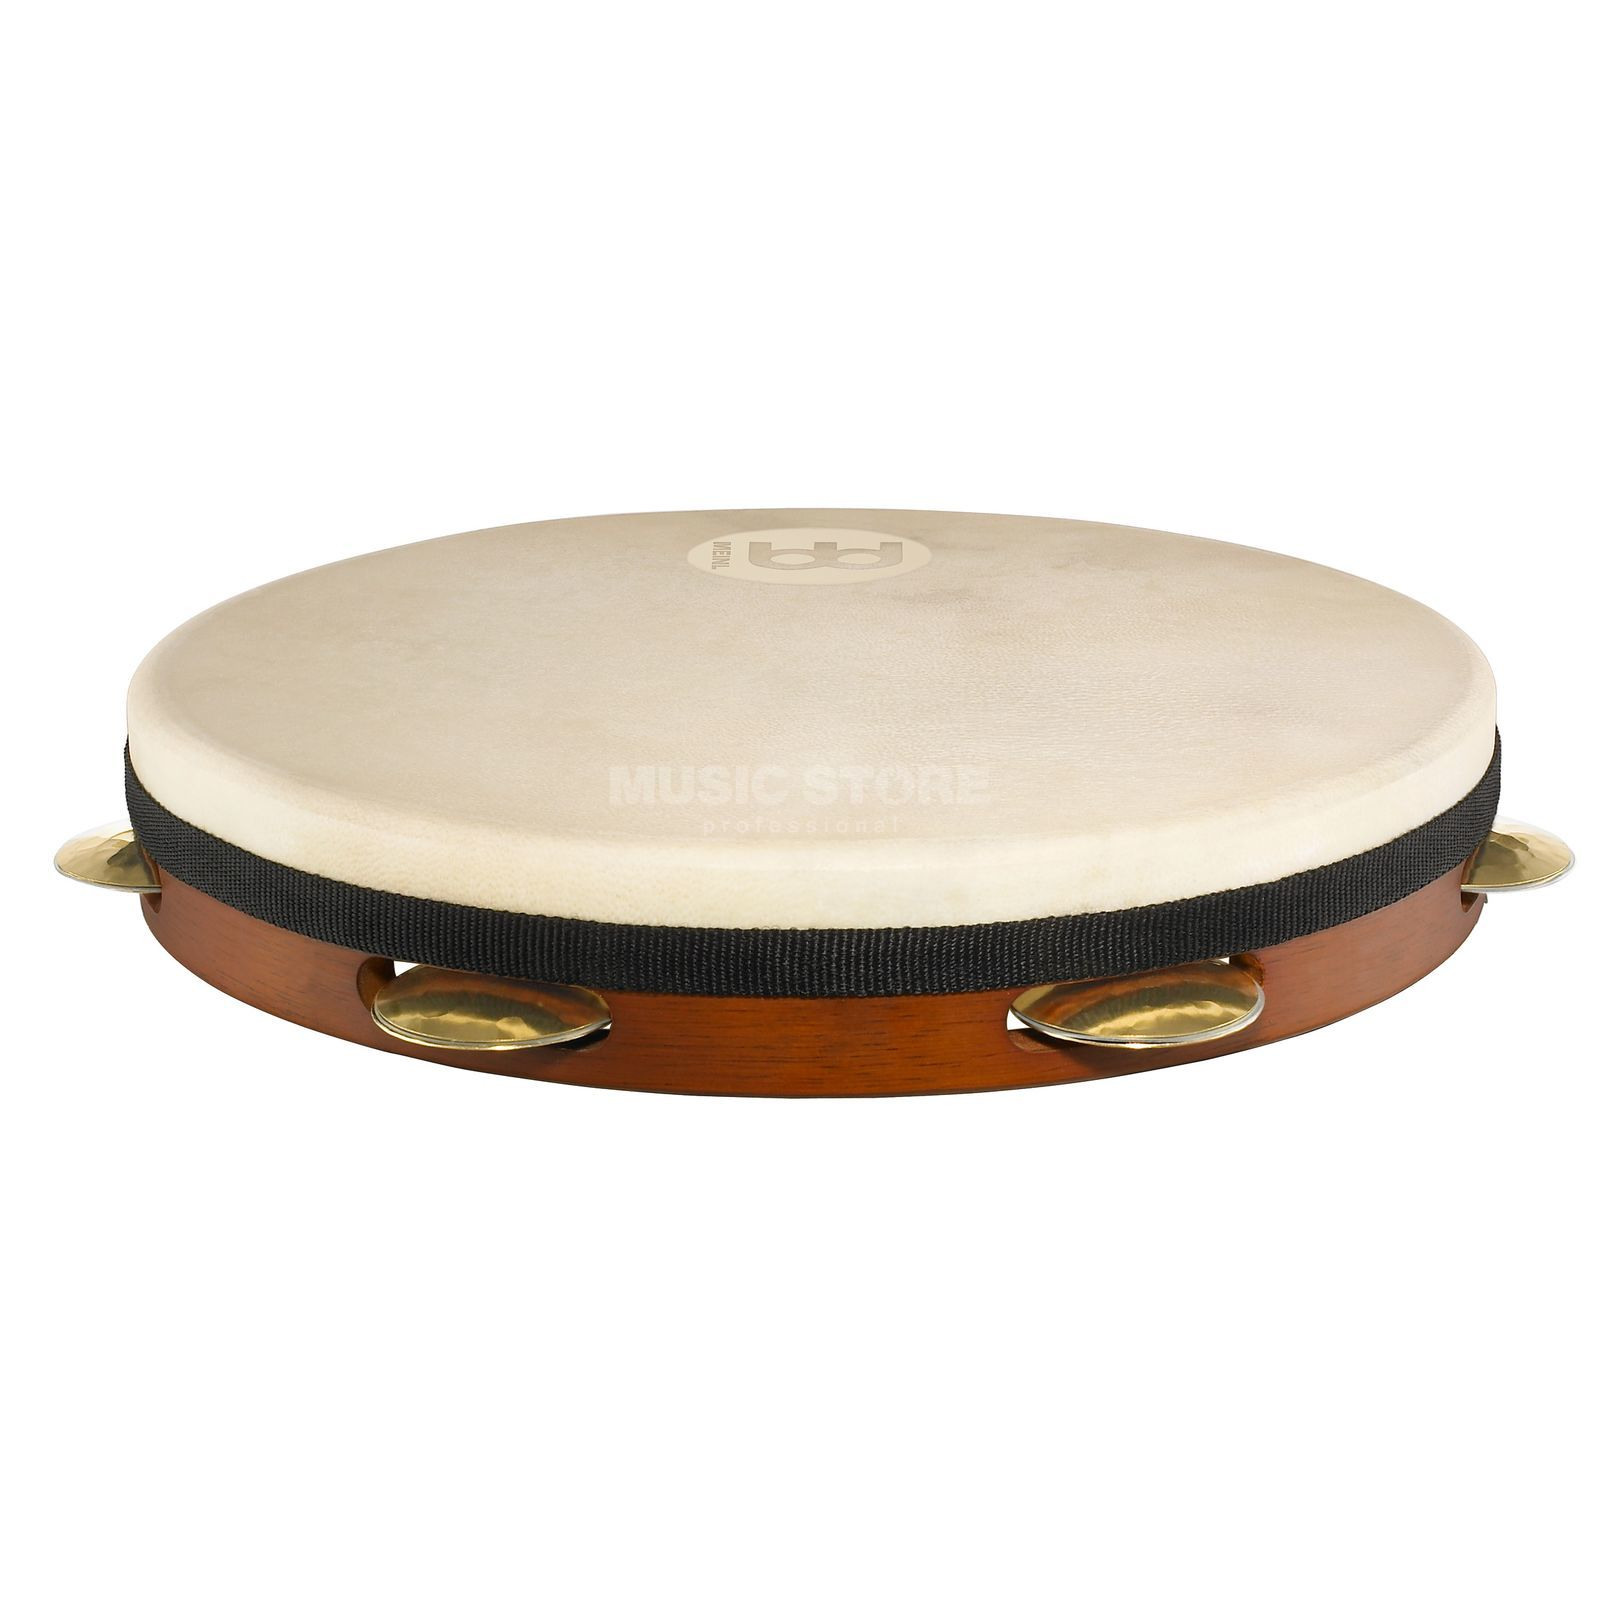 "Meinl Pandeiro PA12AB-M, 12"", African Brown #AB-M Imagen del producto"